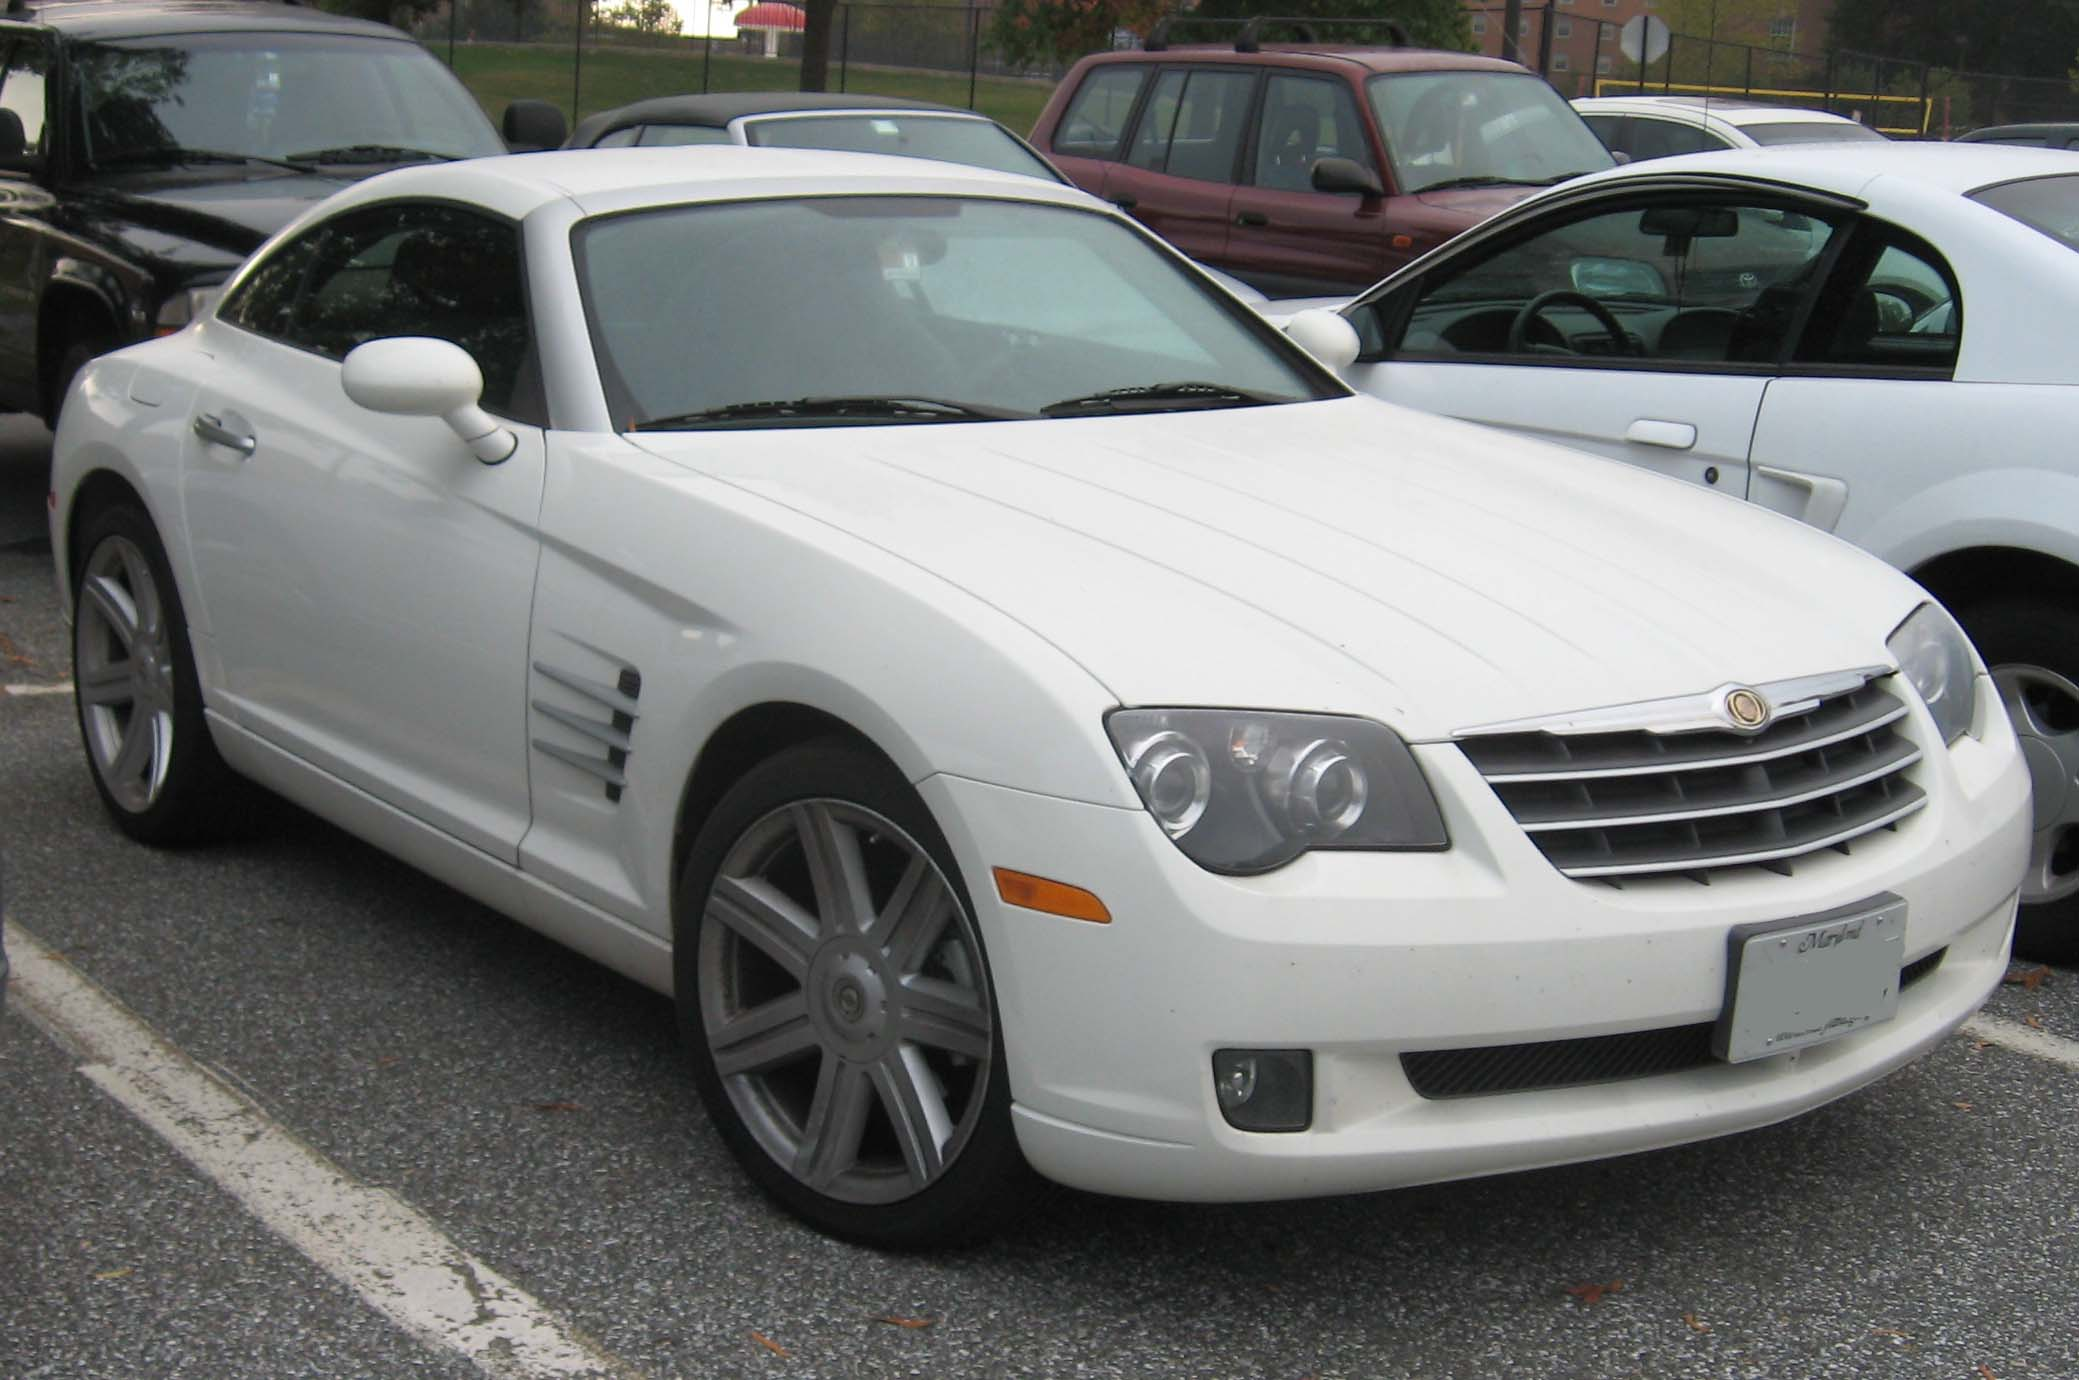 File:Chrysler-Crossfire-hatch.jpg - Wikimedia Commons